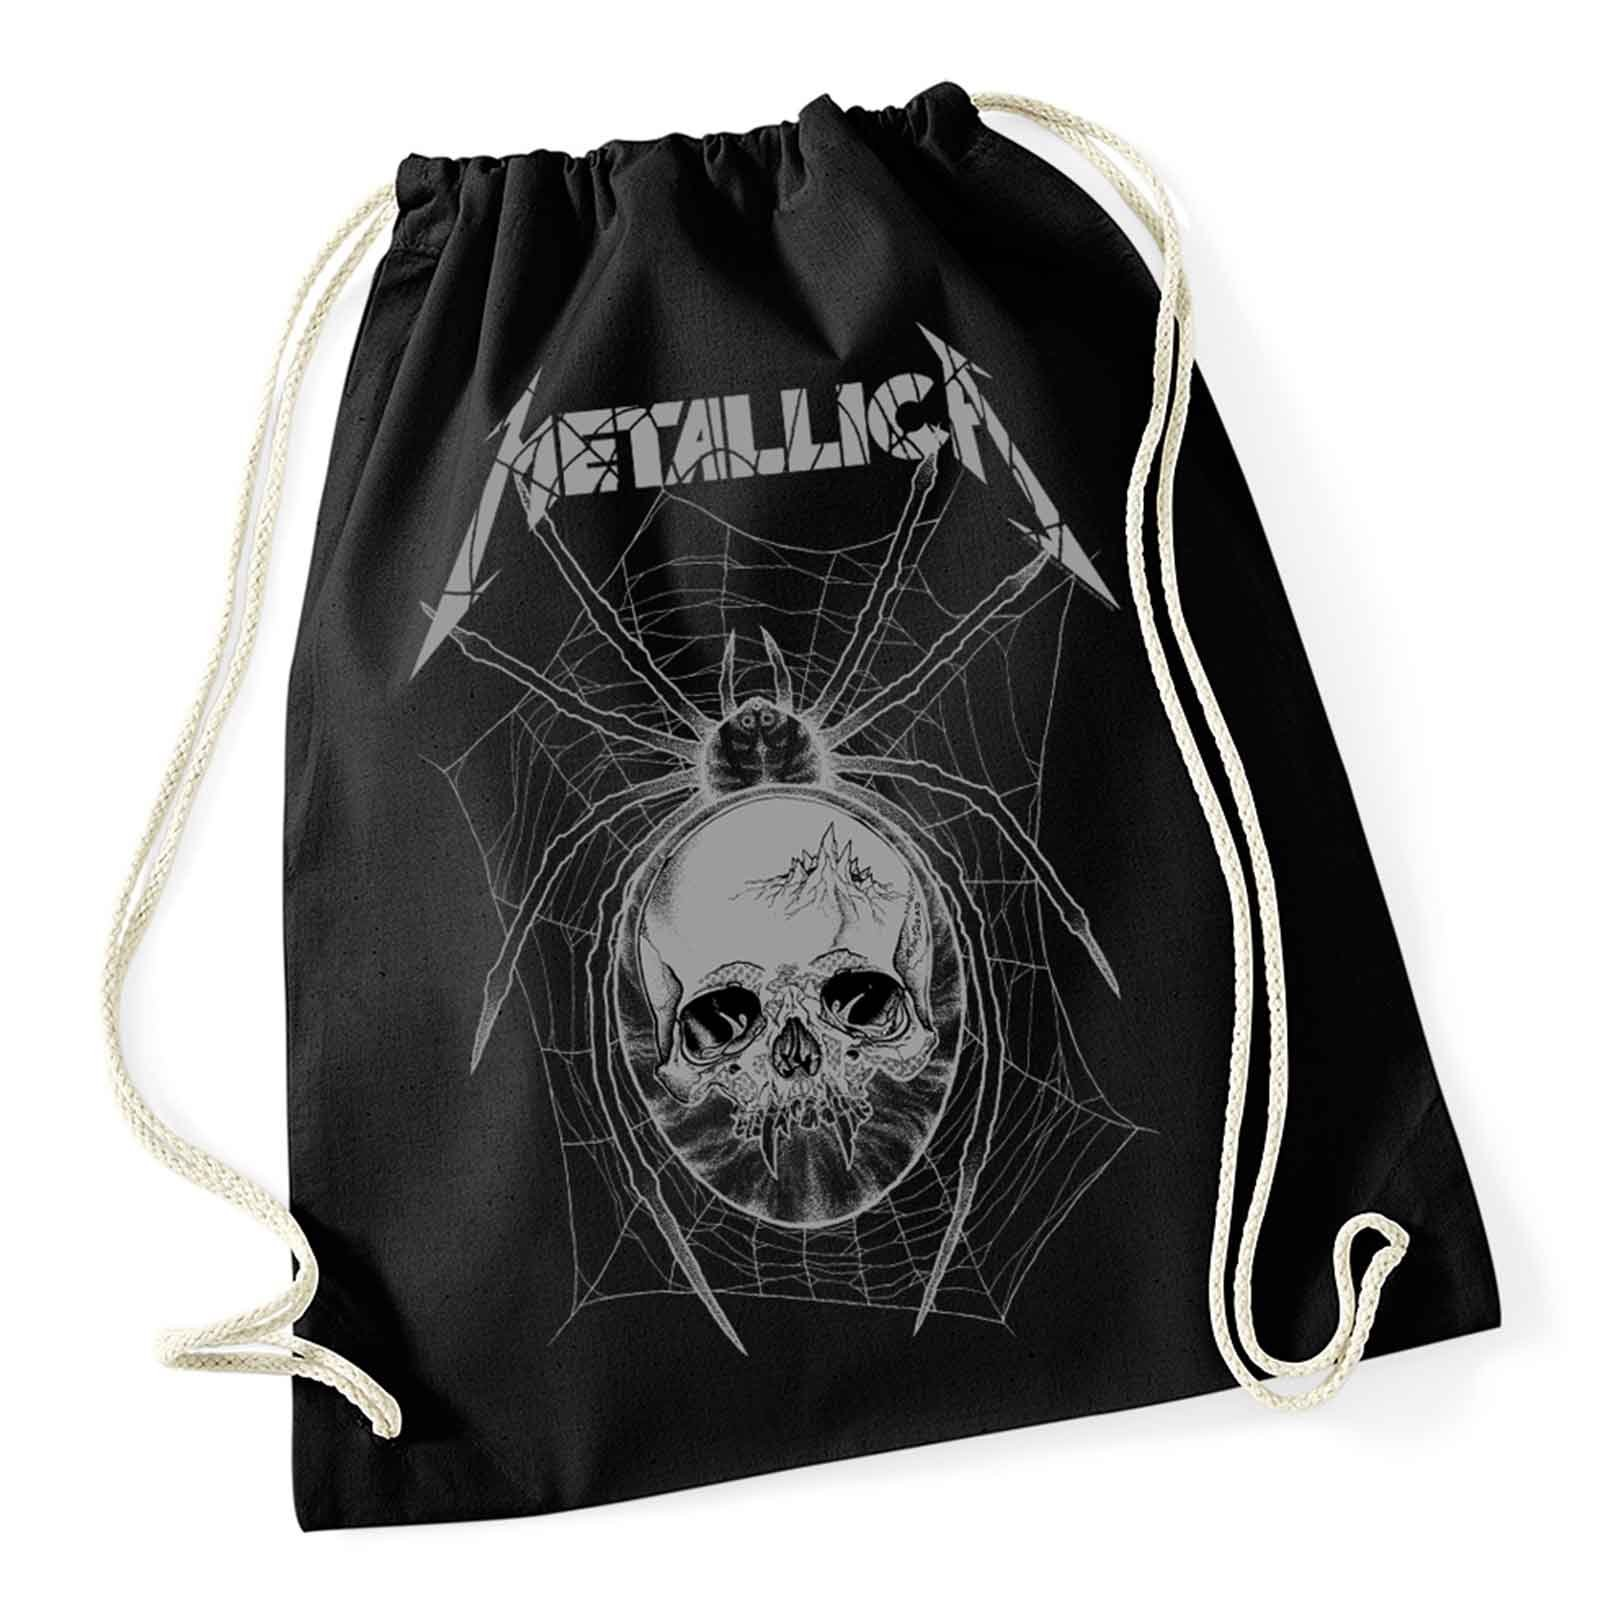 Metallica Gym Bag Grey Spider Band Logo Official Black